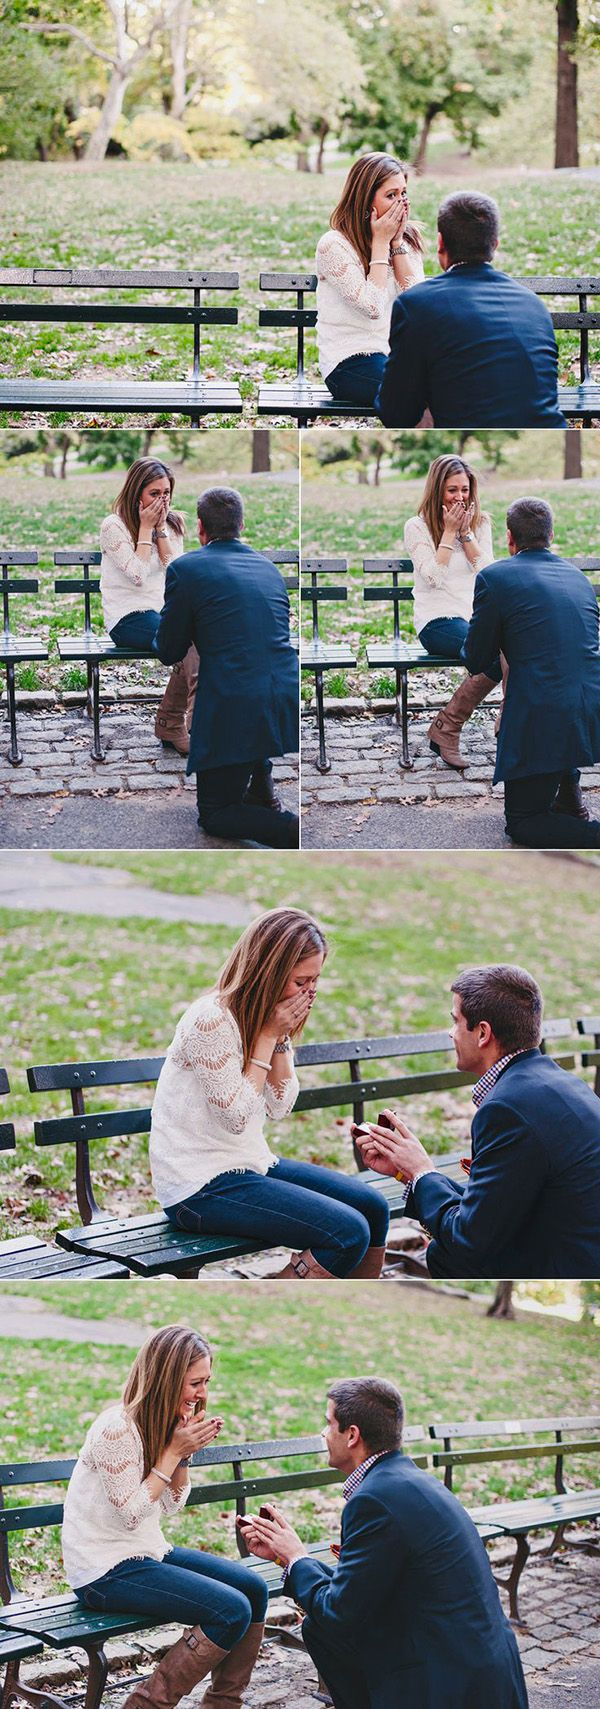 asic running shoes online A surprise proposal in the park  Her reaction is priceless  I need photos like these